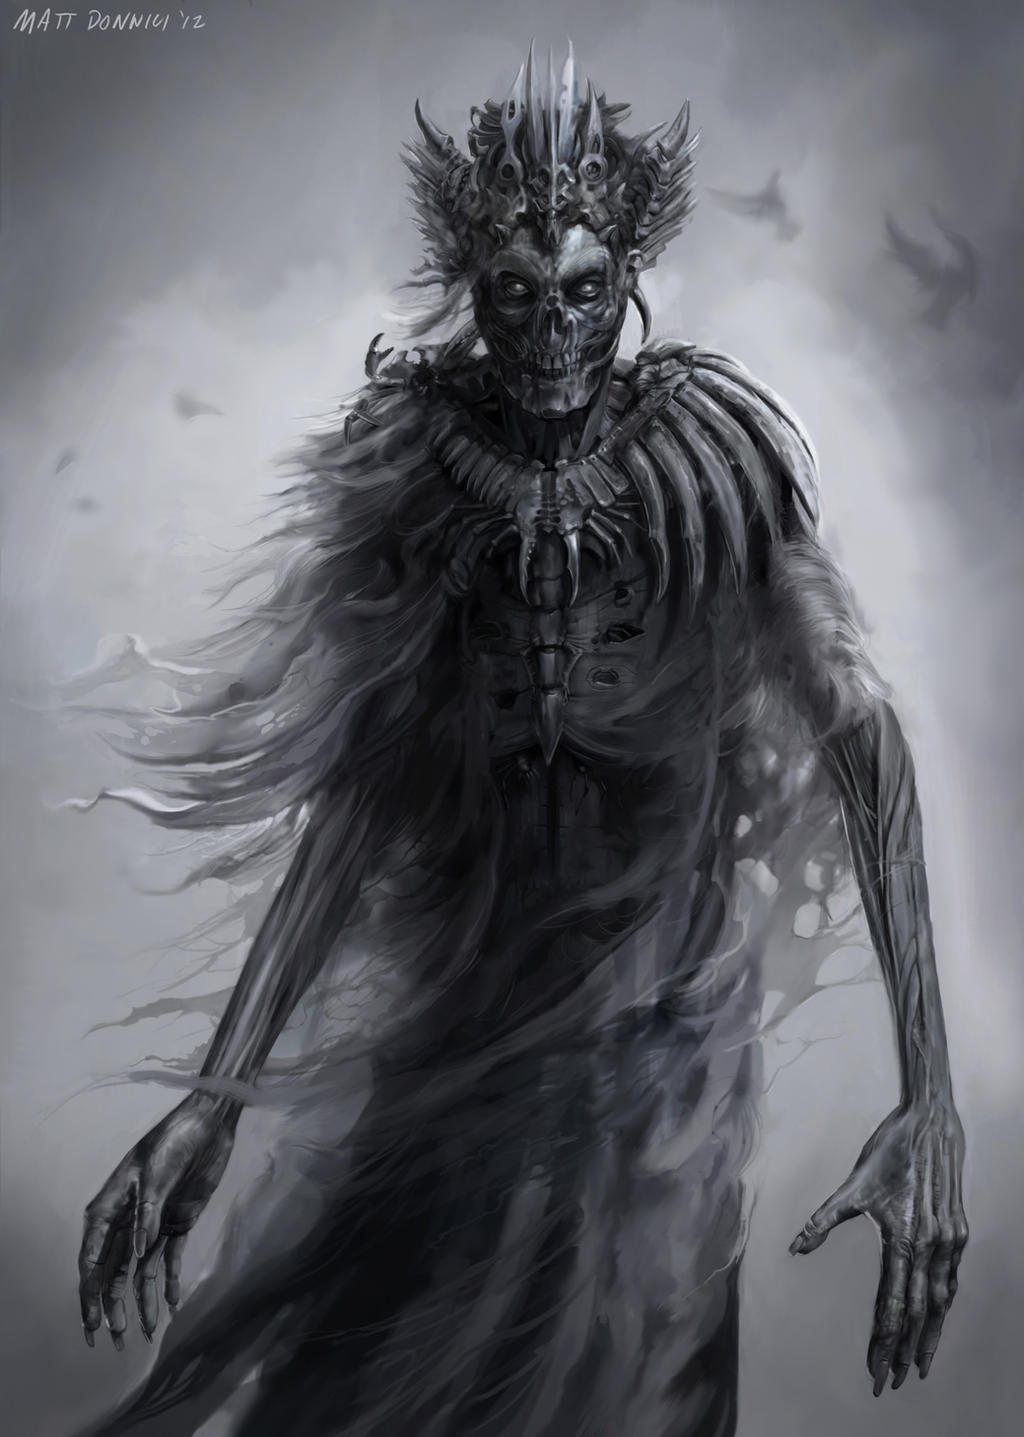 Lich by mattdonnici on DeviantArt